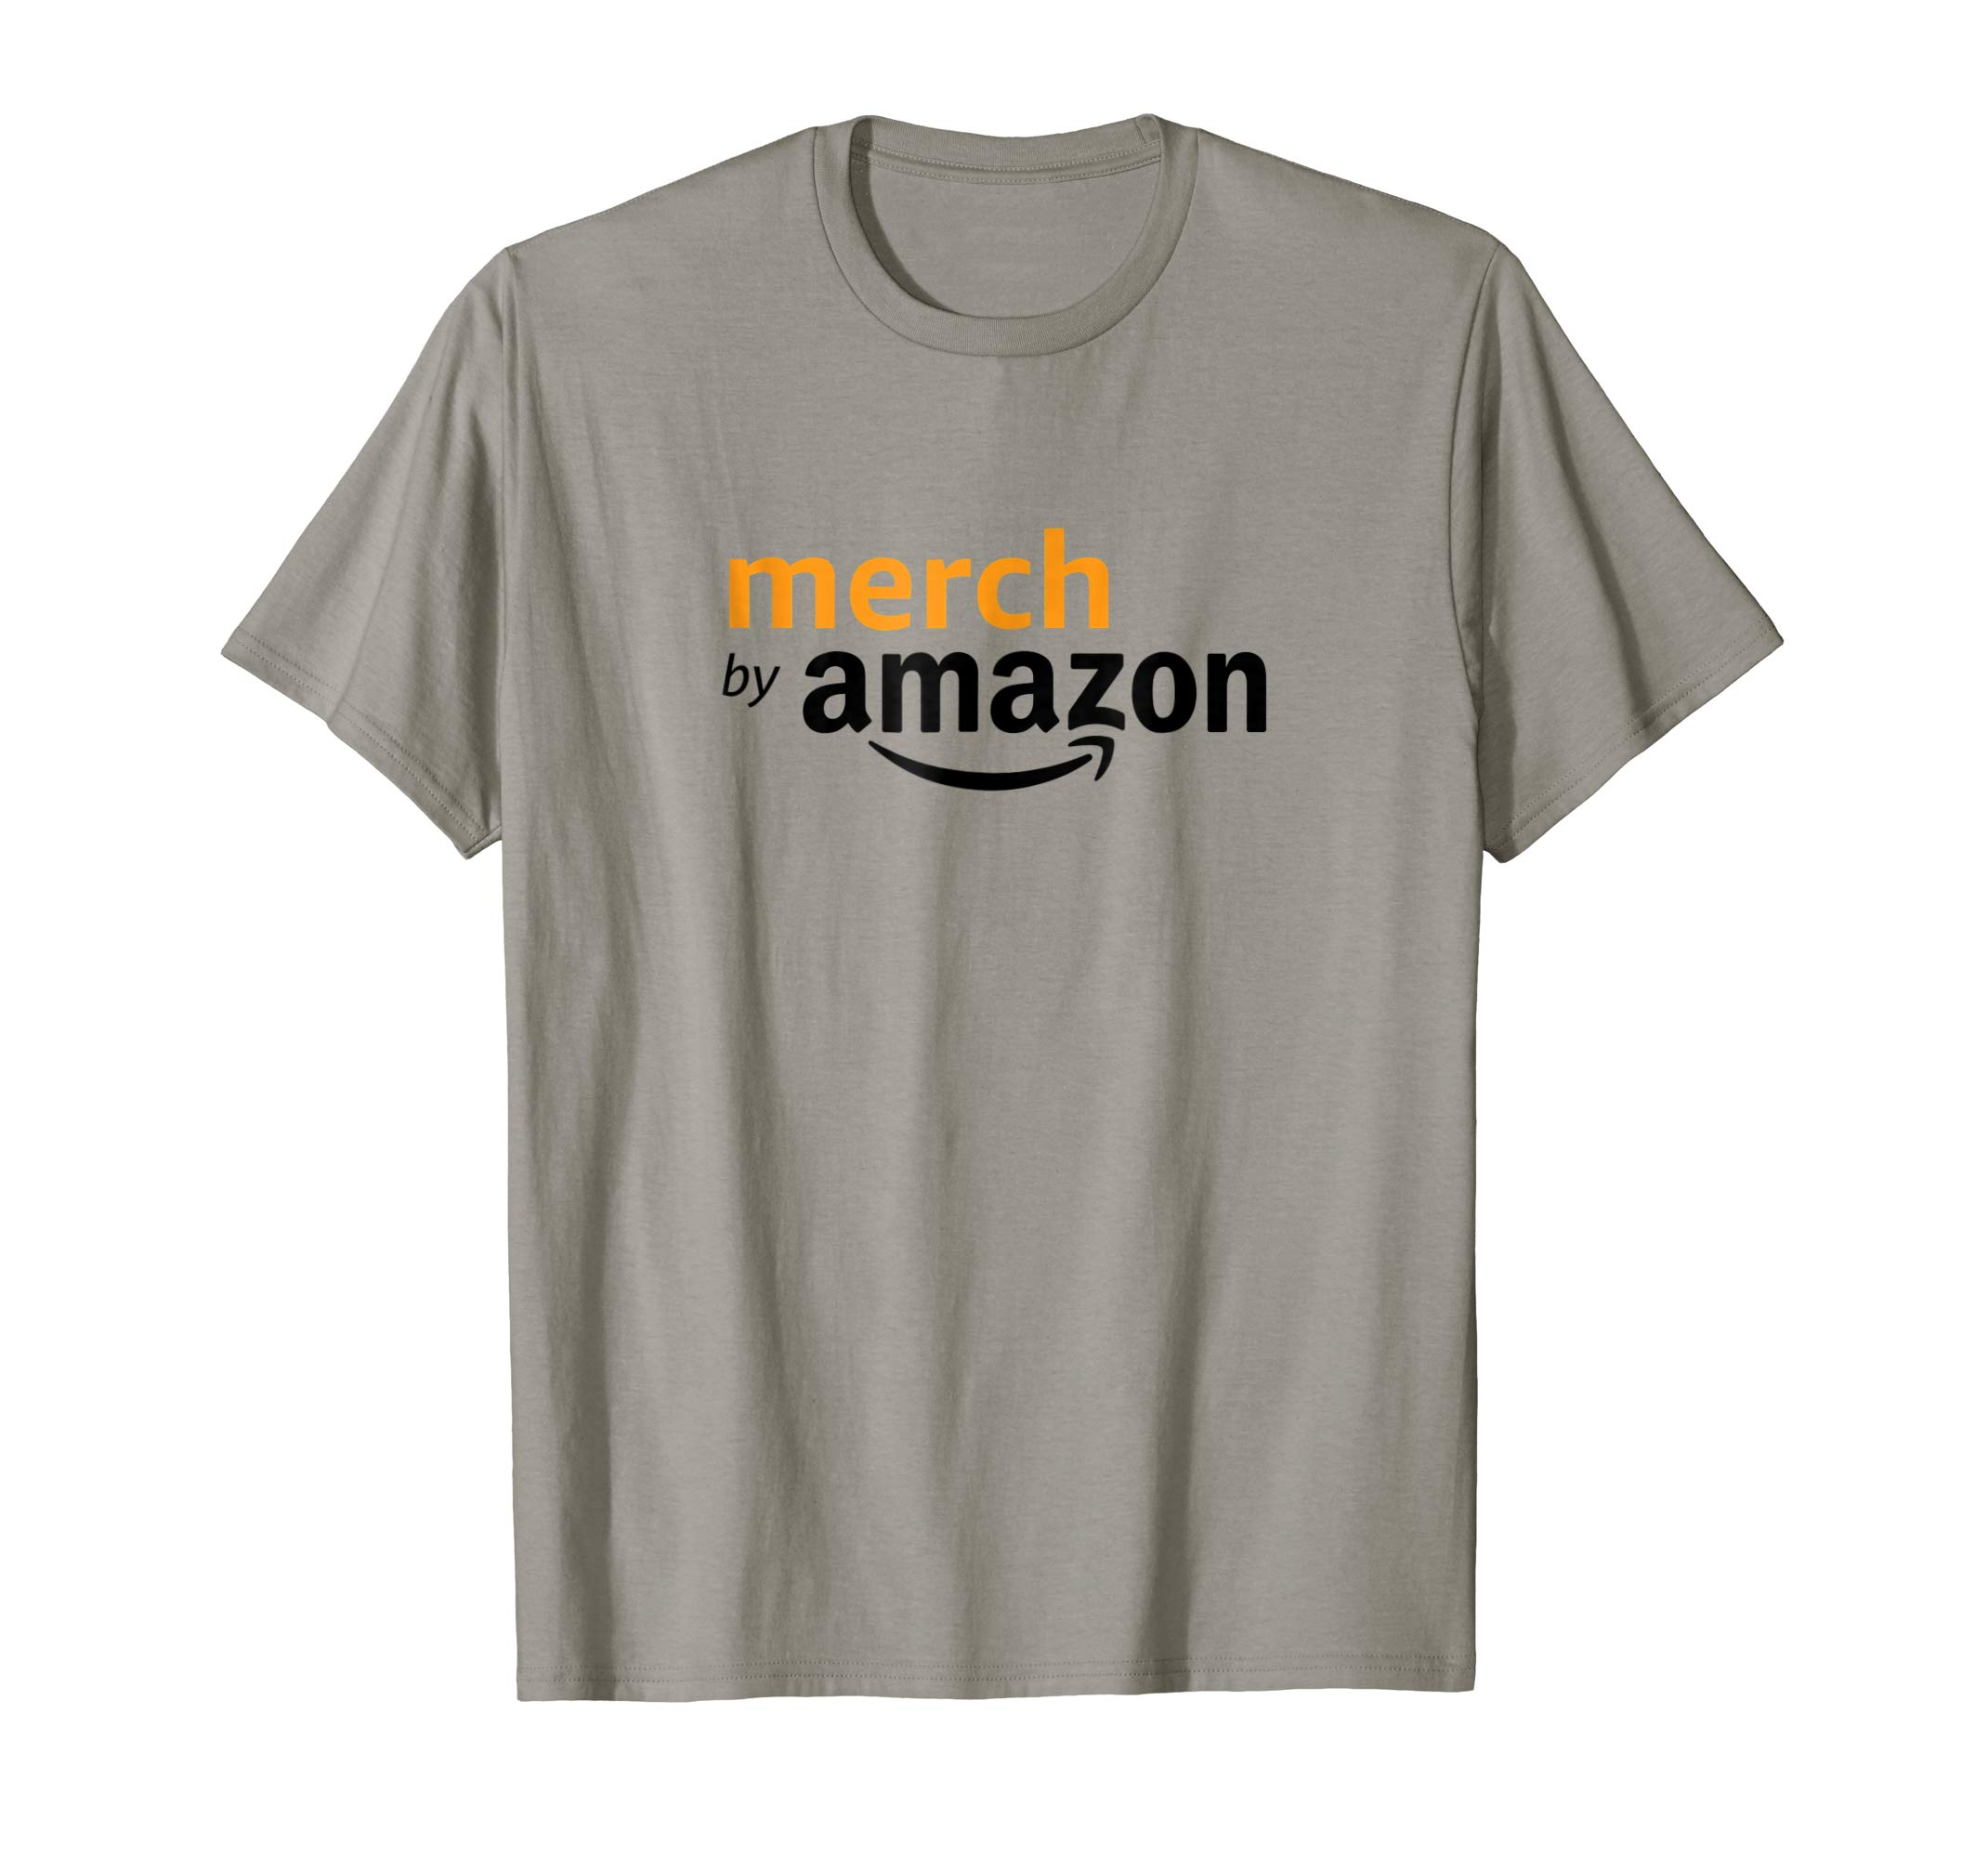 5a29ad447bdd1 Why It Doesn't Seem to Matter That Amazon Will Soon Be the Largest ...